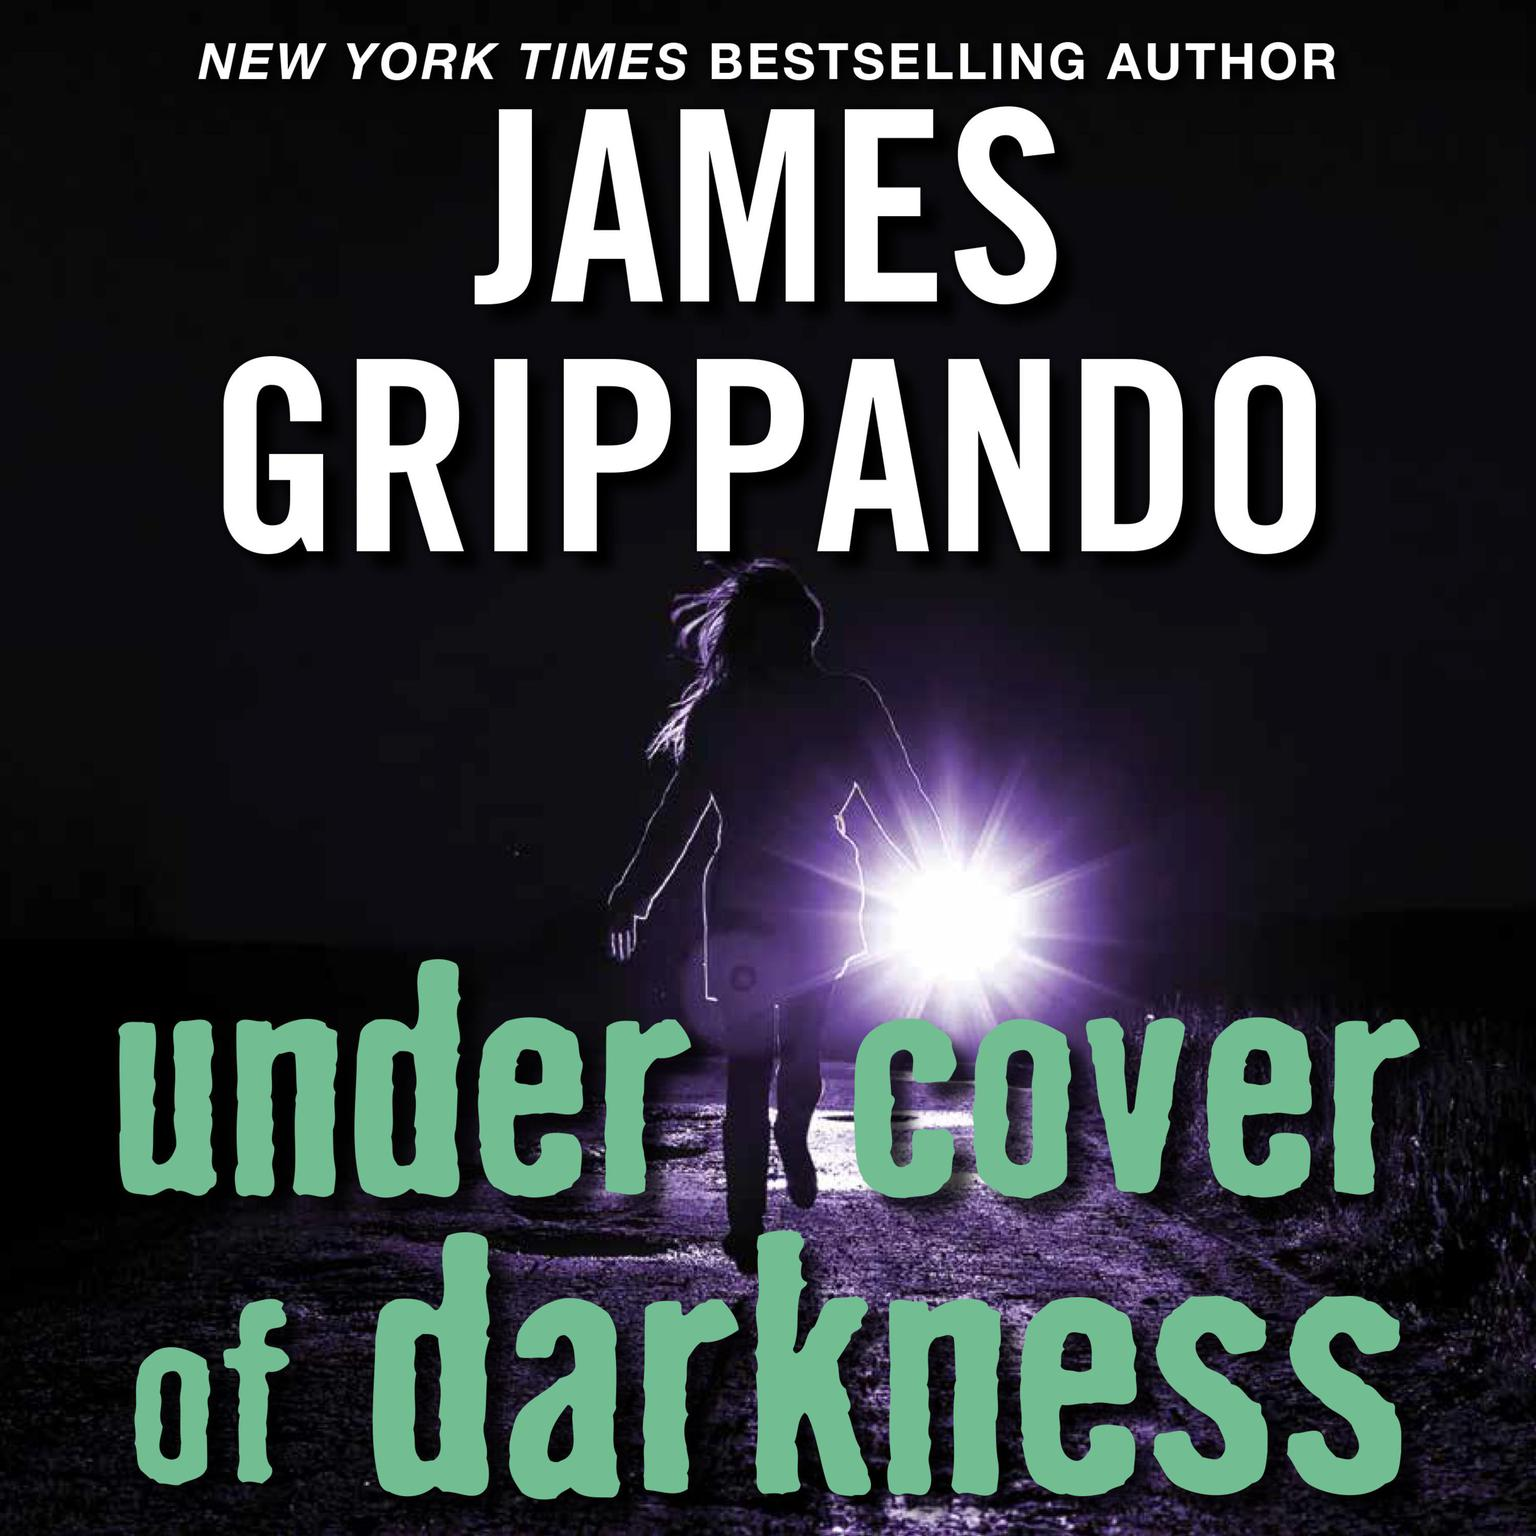 download under cover of darkness abridged audiobook by james grippando for just. Black Bedroom Furniture Sets. Home Design Ideas